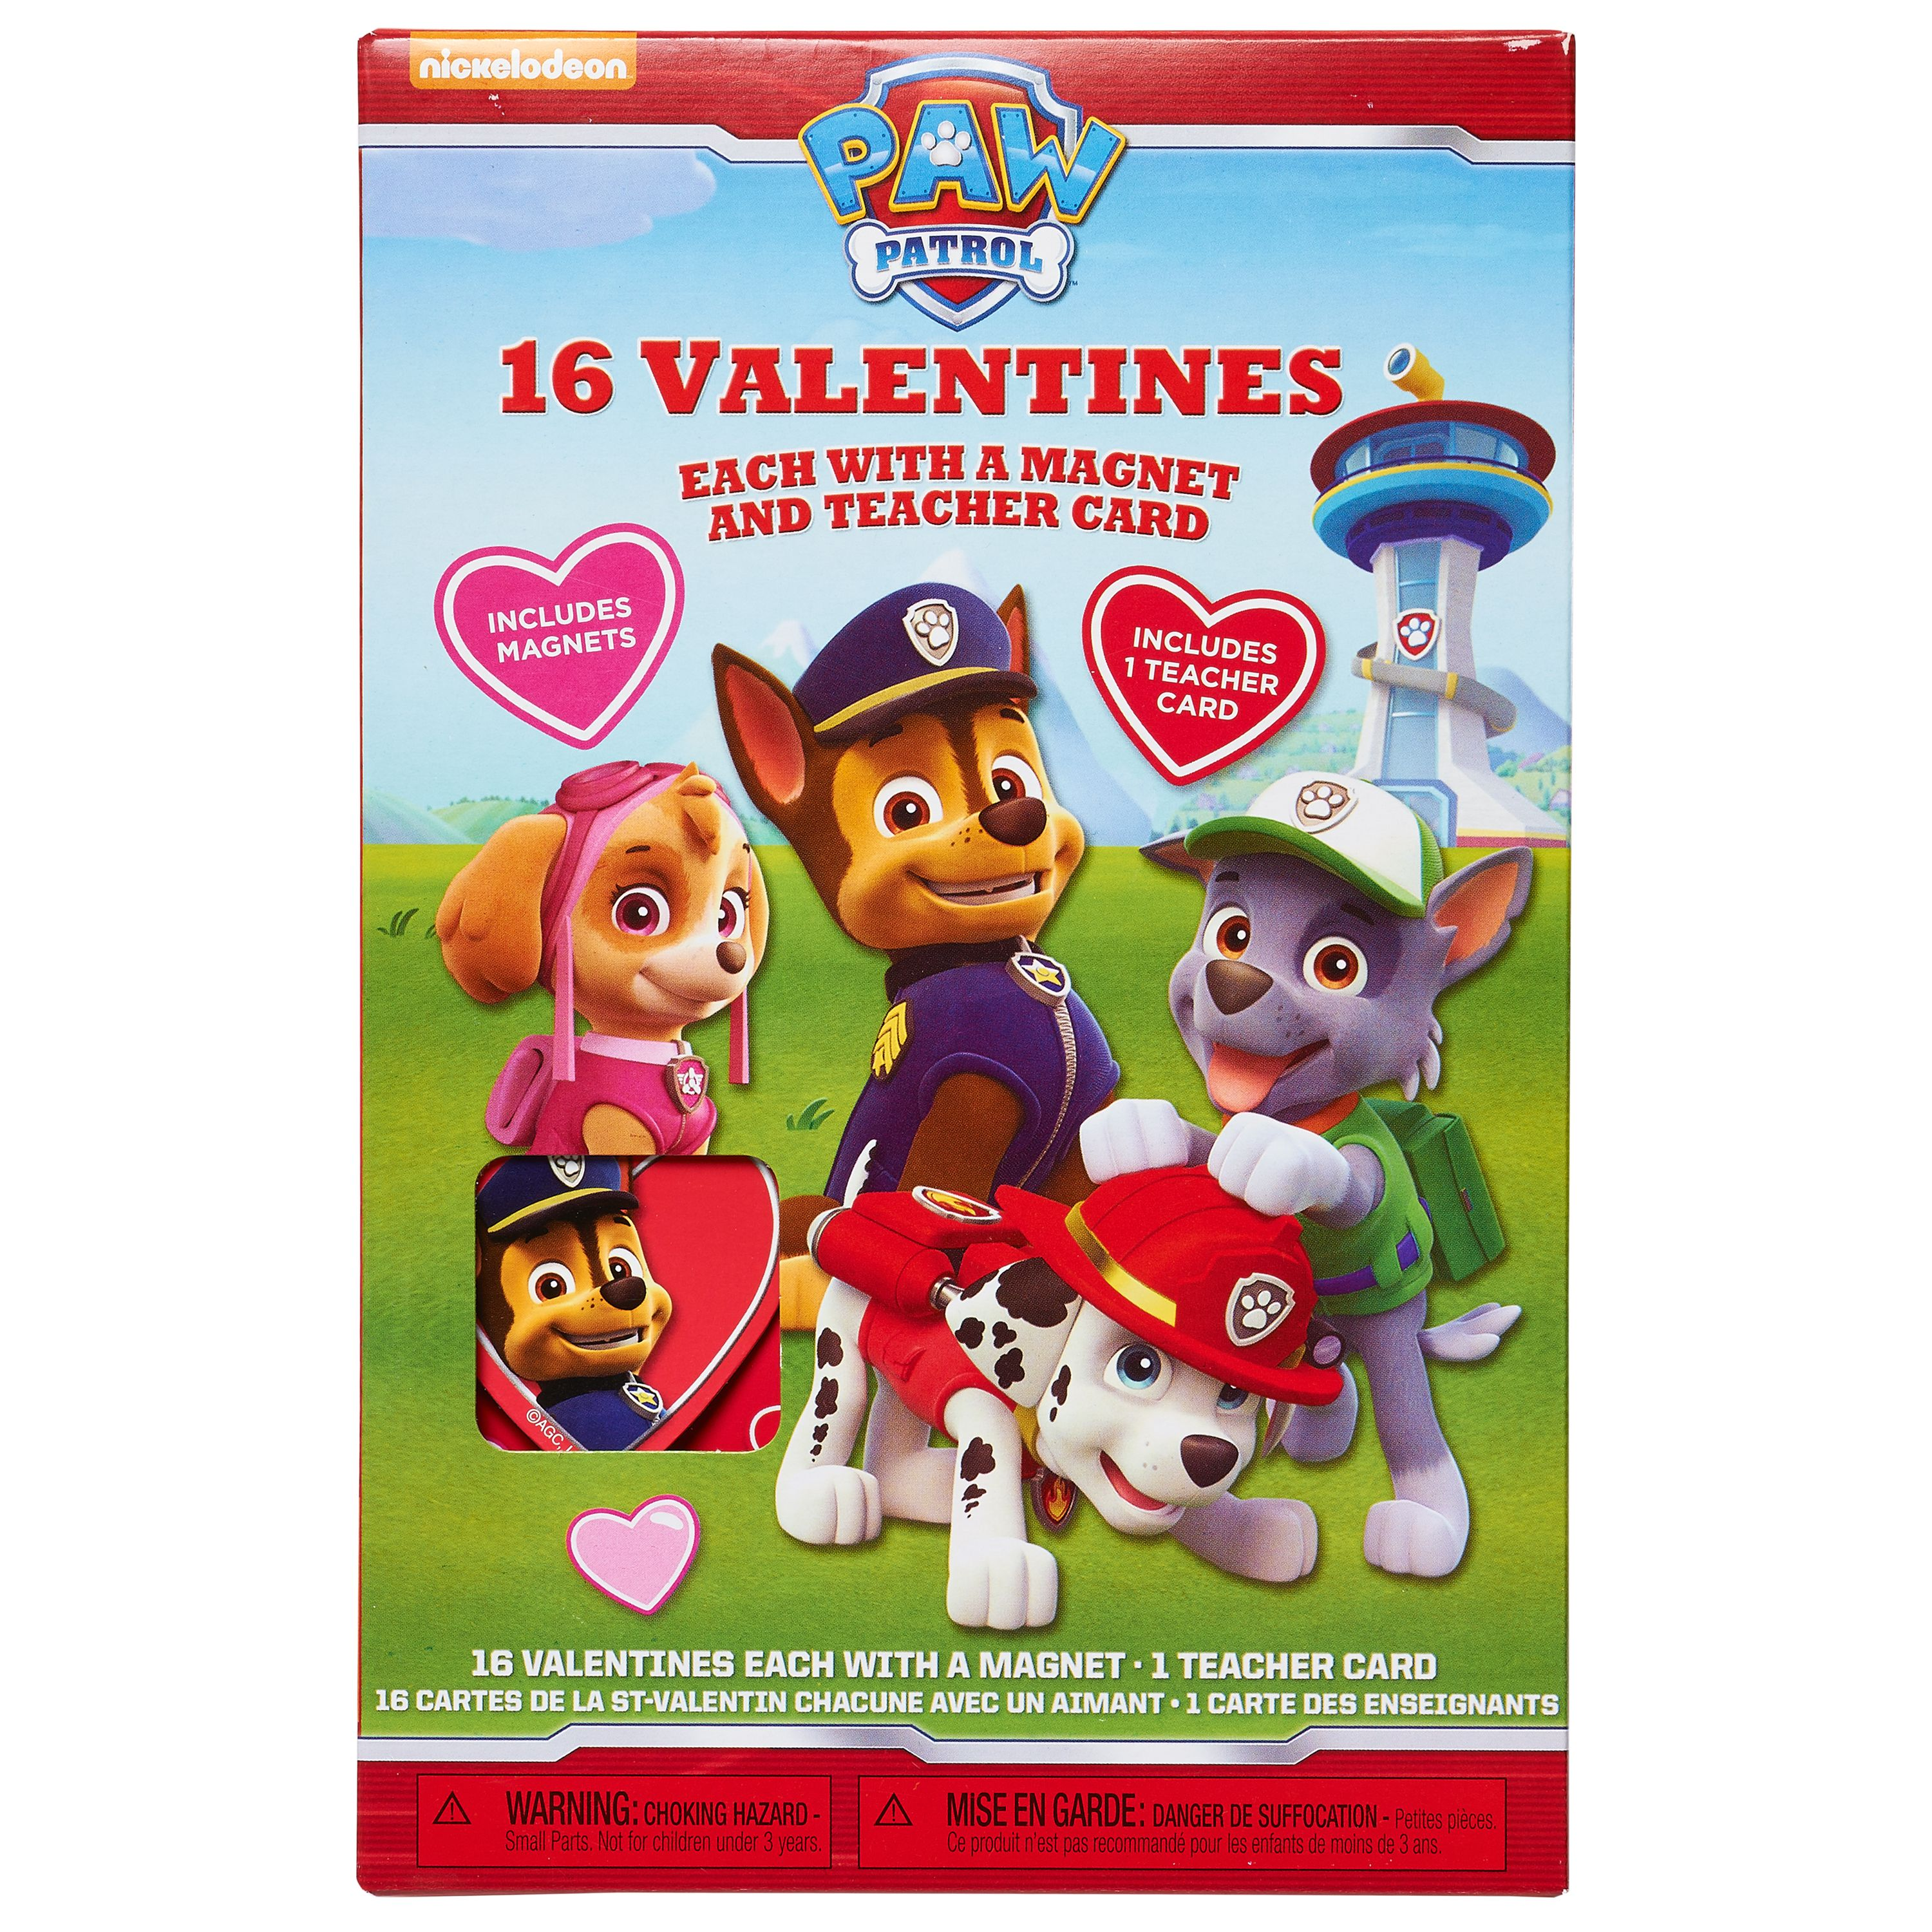 PAW Patrol Valentine's Day Exchange Cards, 16 count with magnets